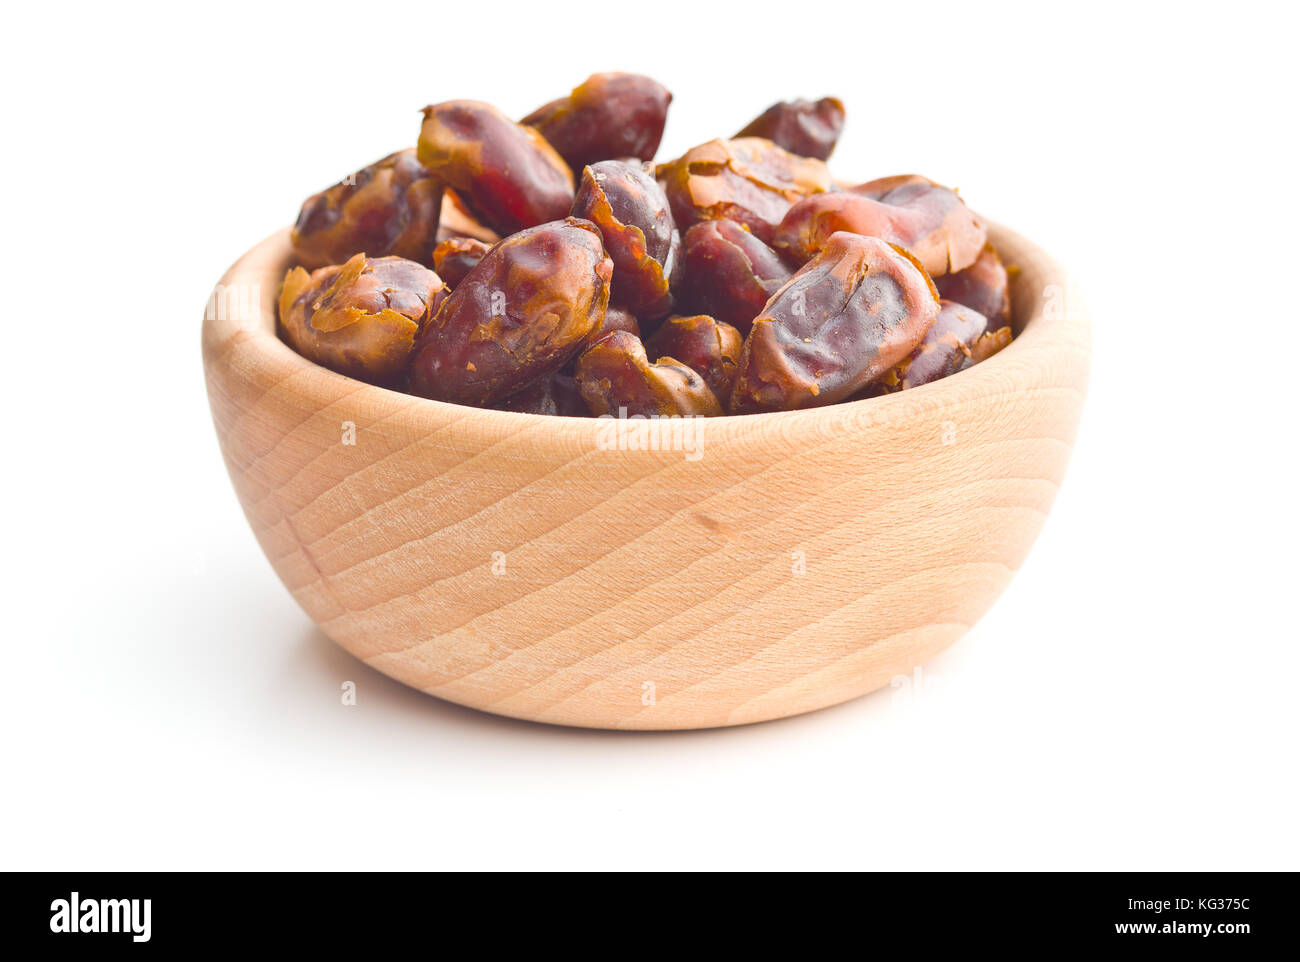 Sweet dates without stones in bowl isolated on white background. - Stock Image